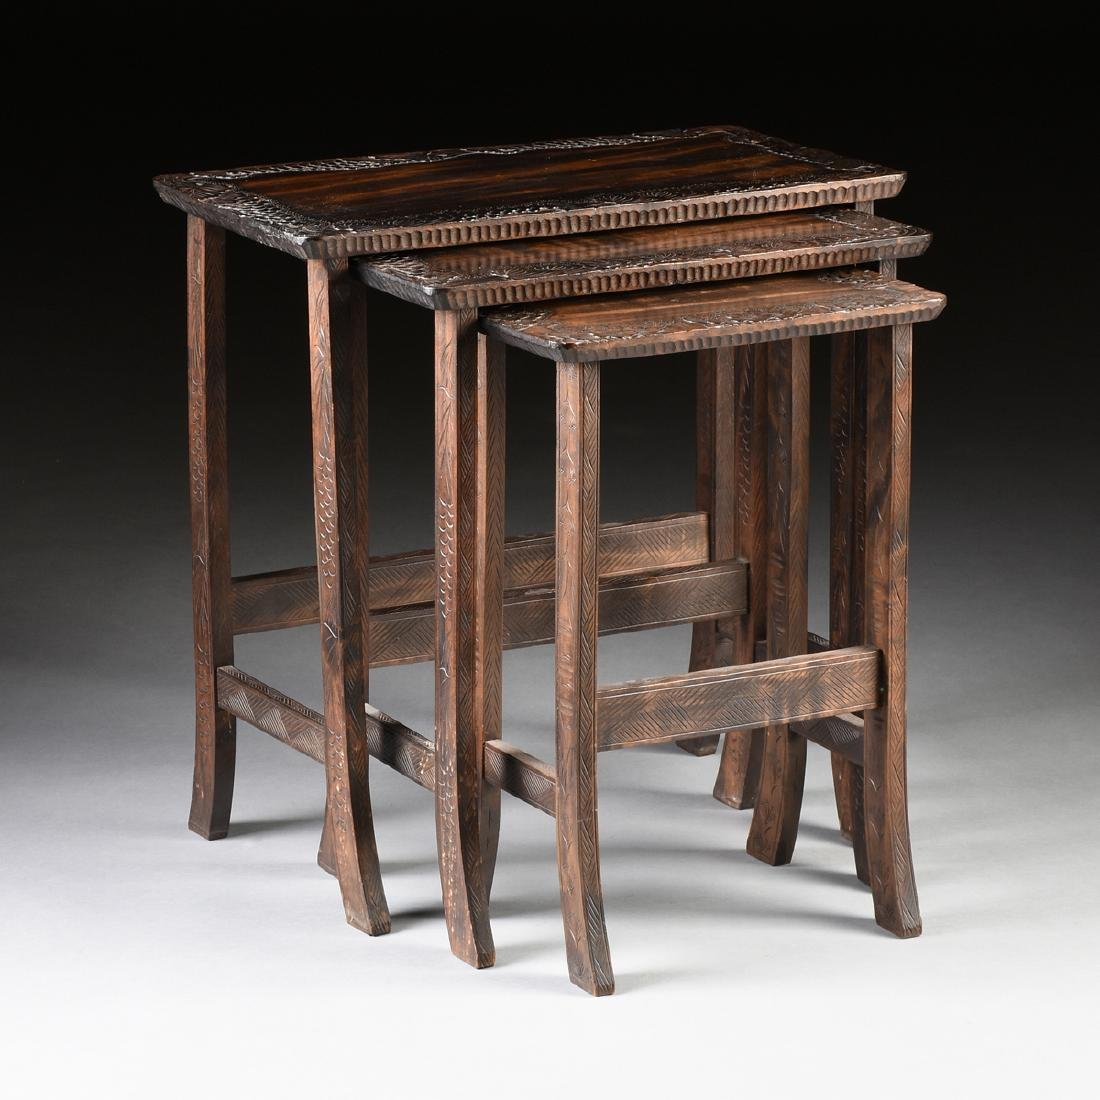 A SET OF THREE JAPANESE CARVED HARDWOOD NESTING TABLES,